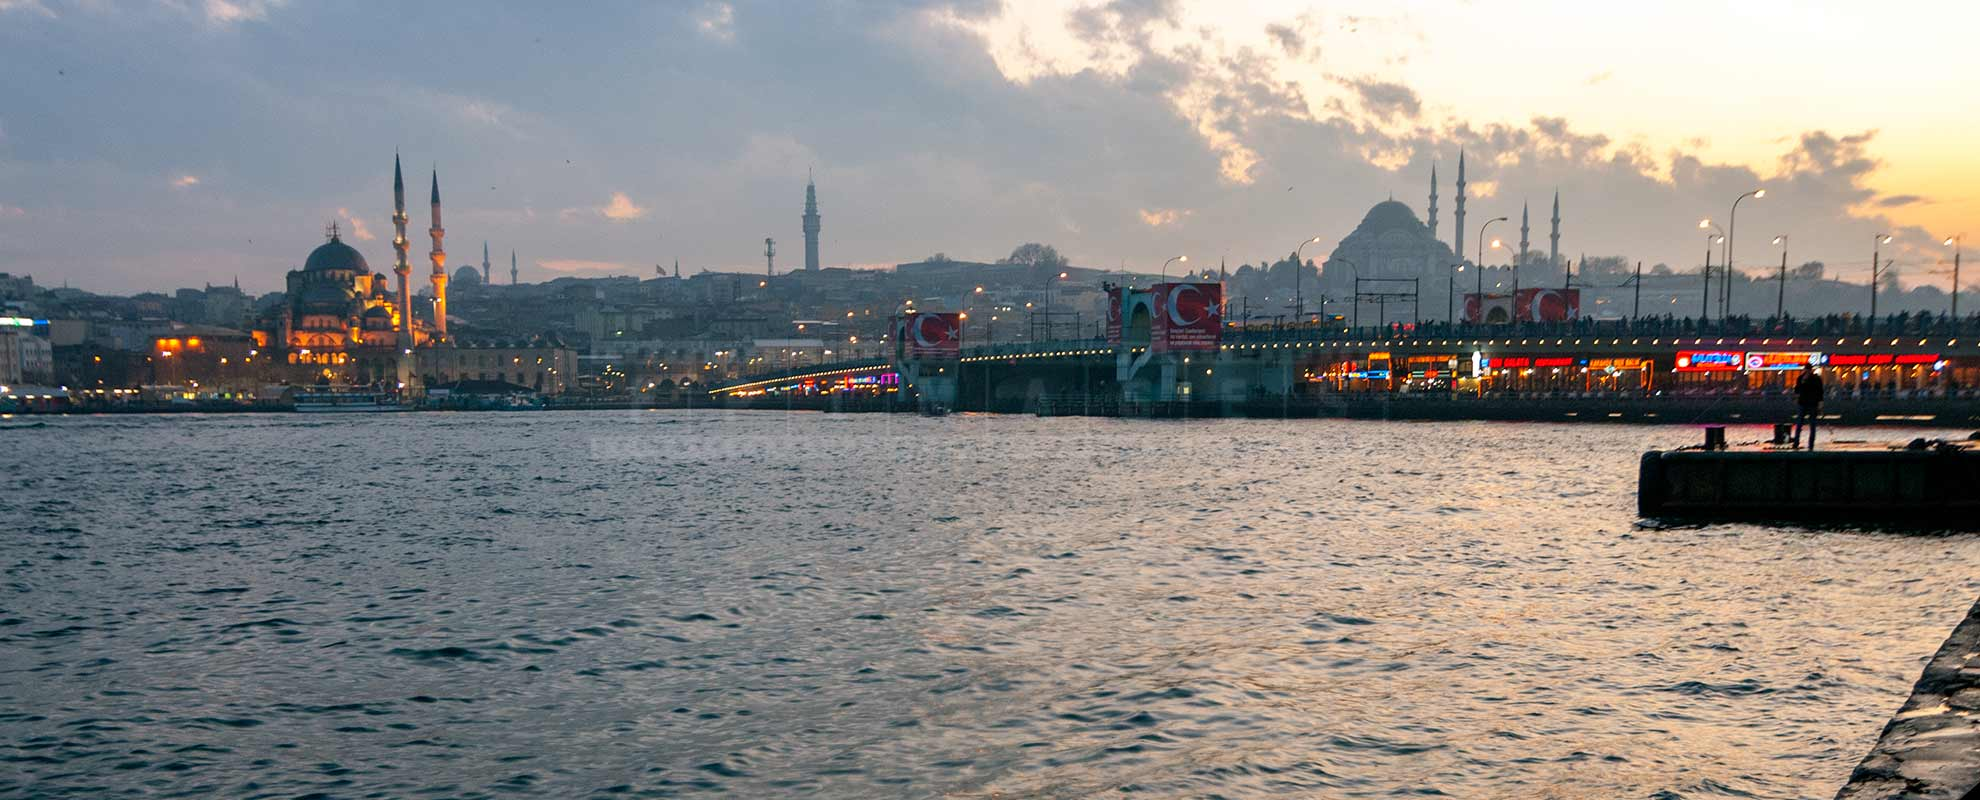 Galata Bridge in Istanbul has many restautants on the lower level